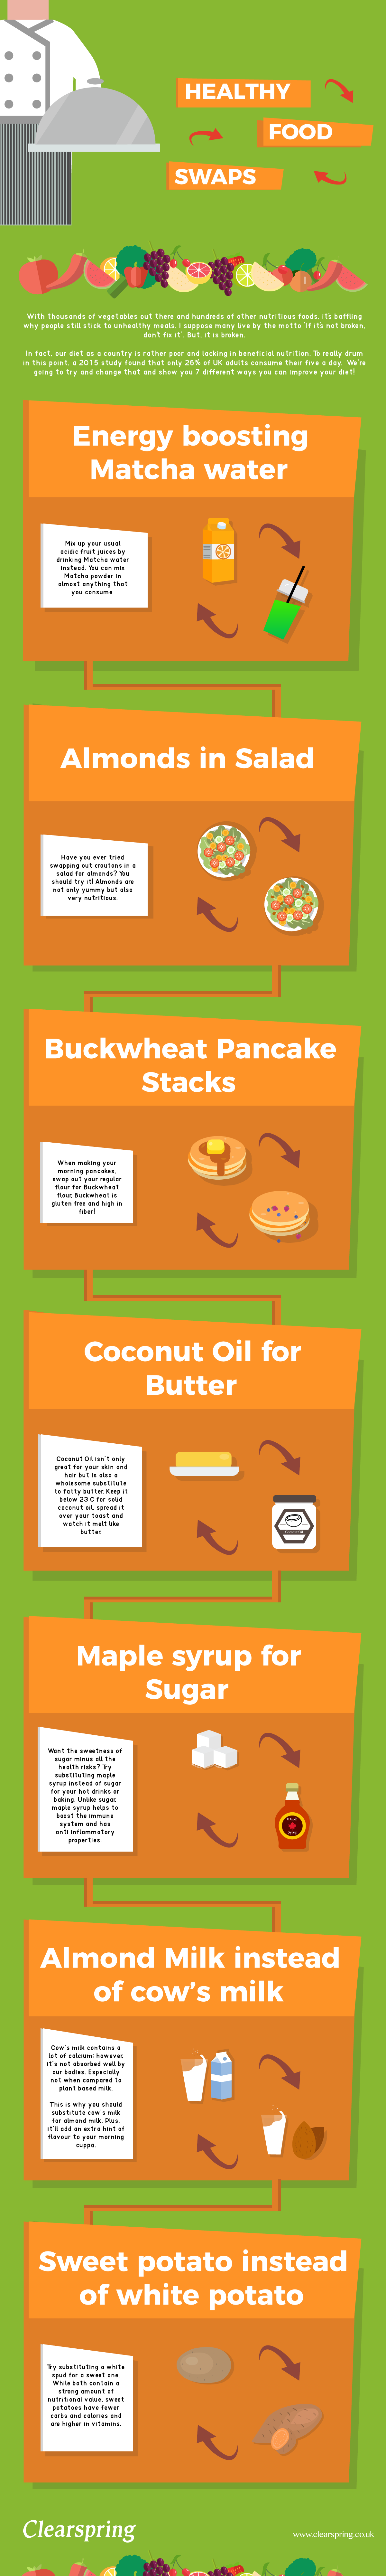 Best-Food-swaps-Infographic-.png